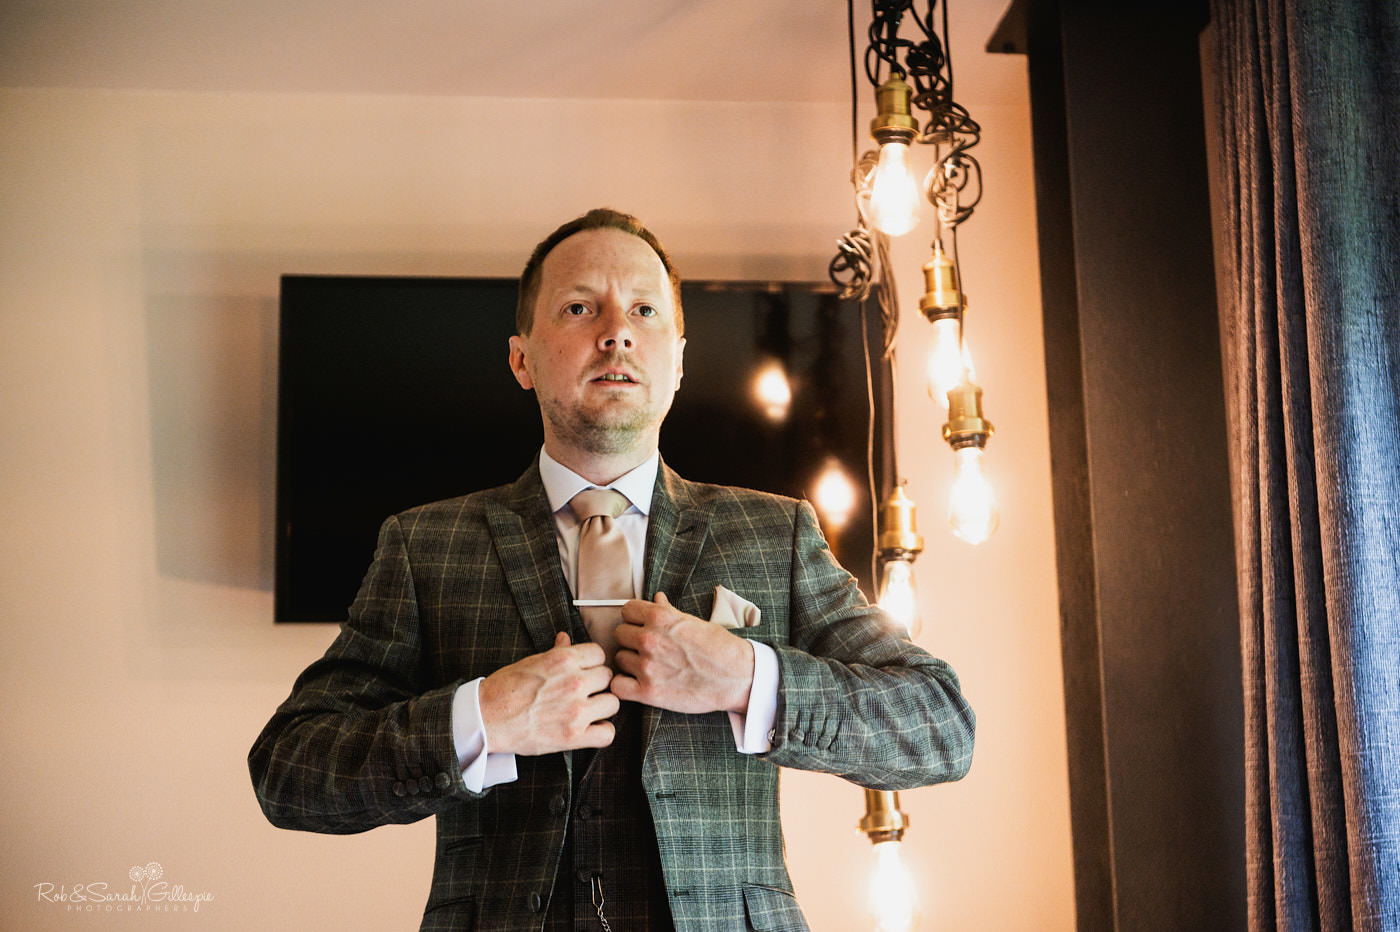 Groom checks tie and jacket as he gets ready for wedding